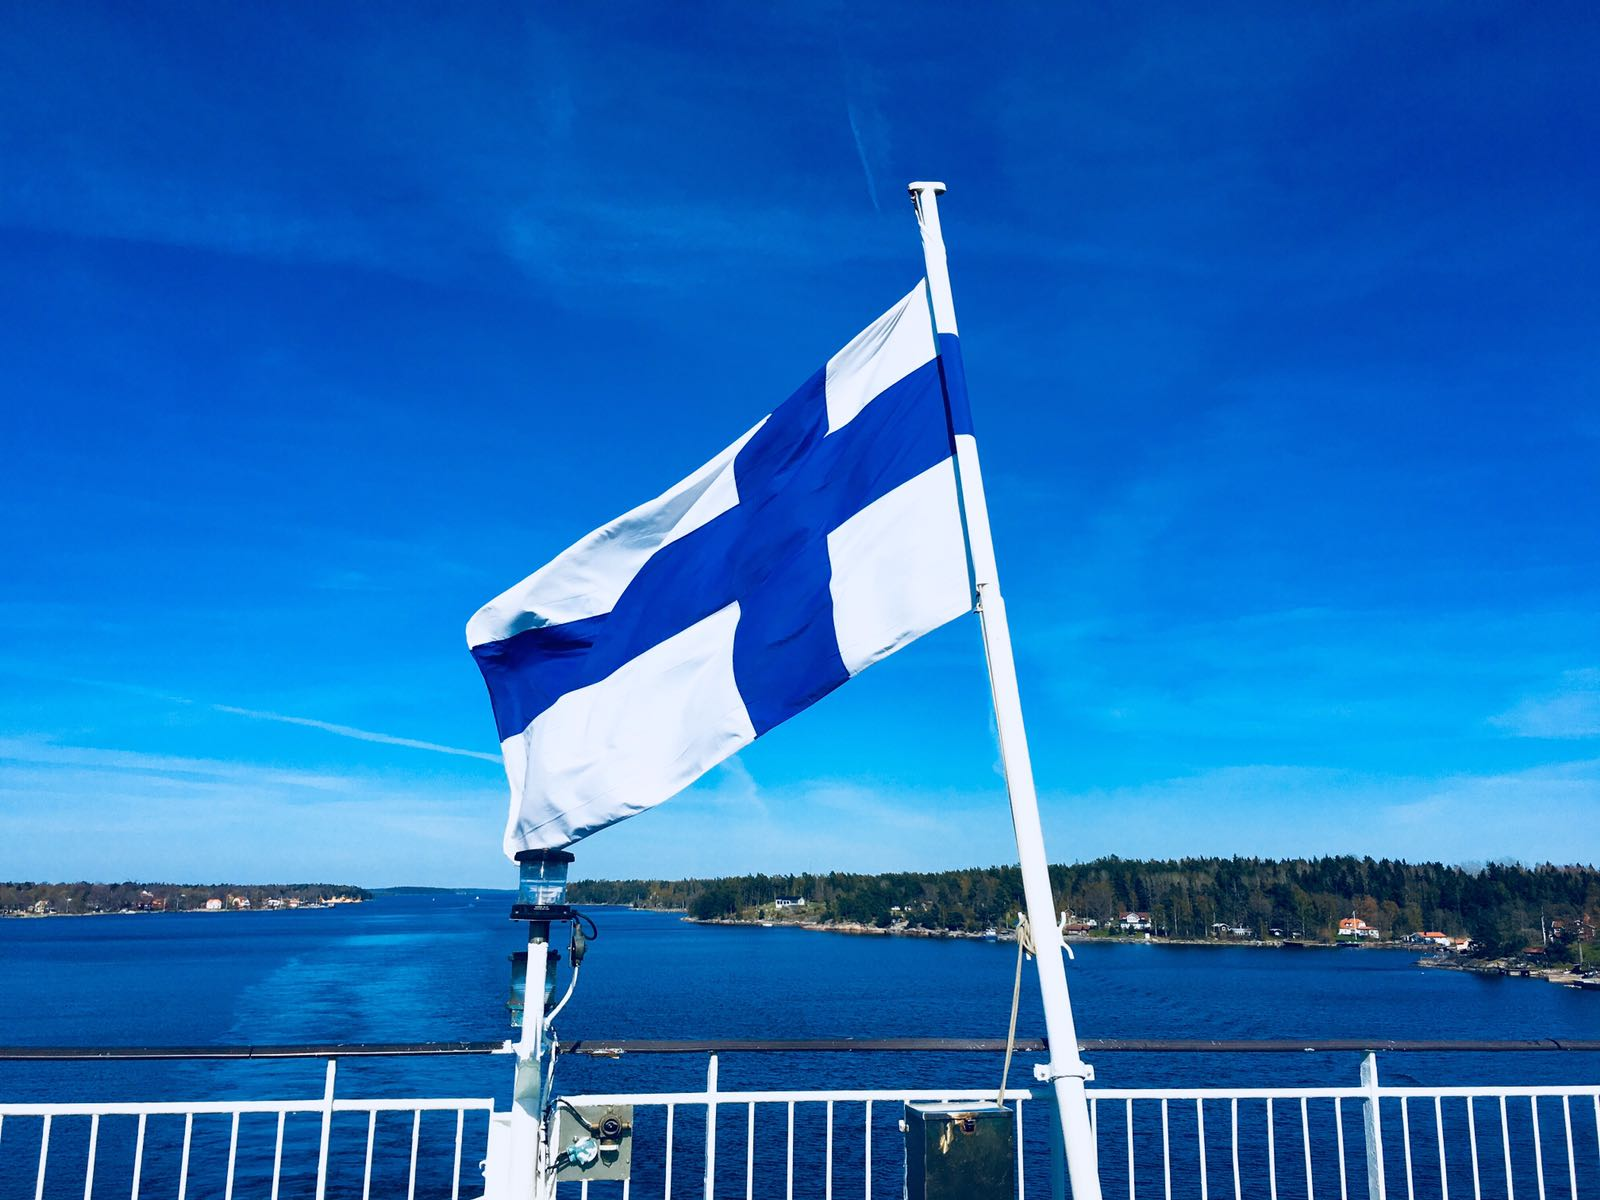 Finnish flag on back of a boat. Beautiful weather, blue skies